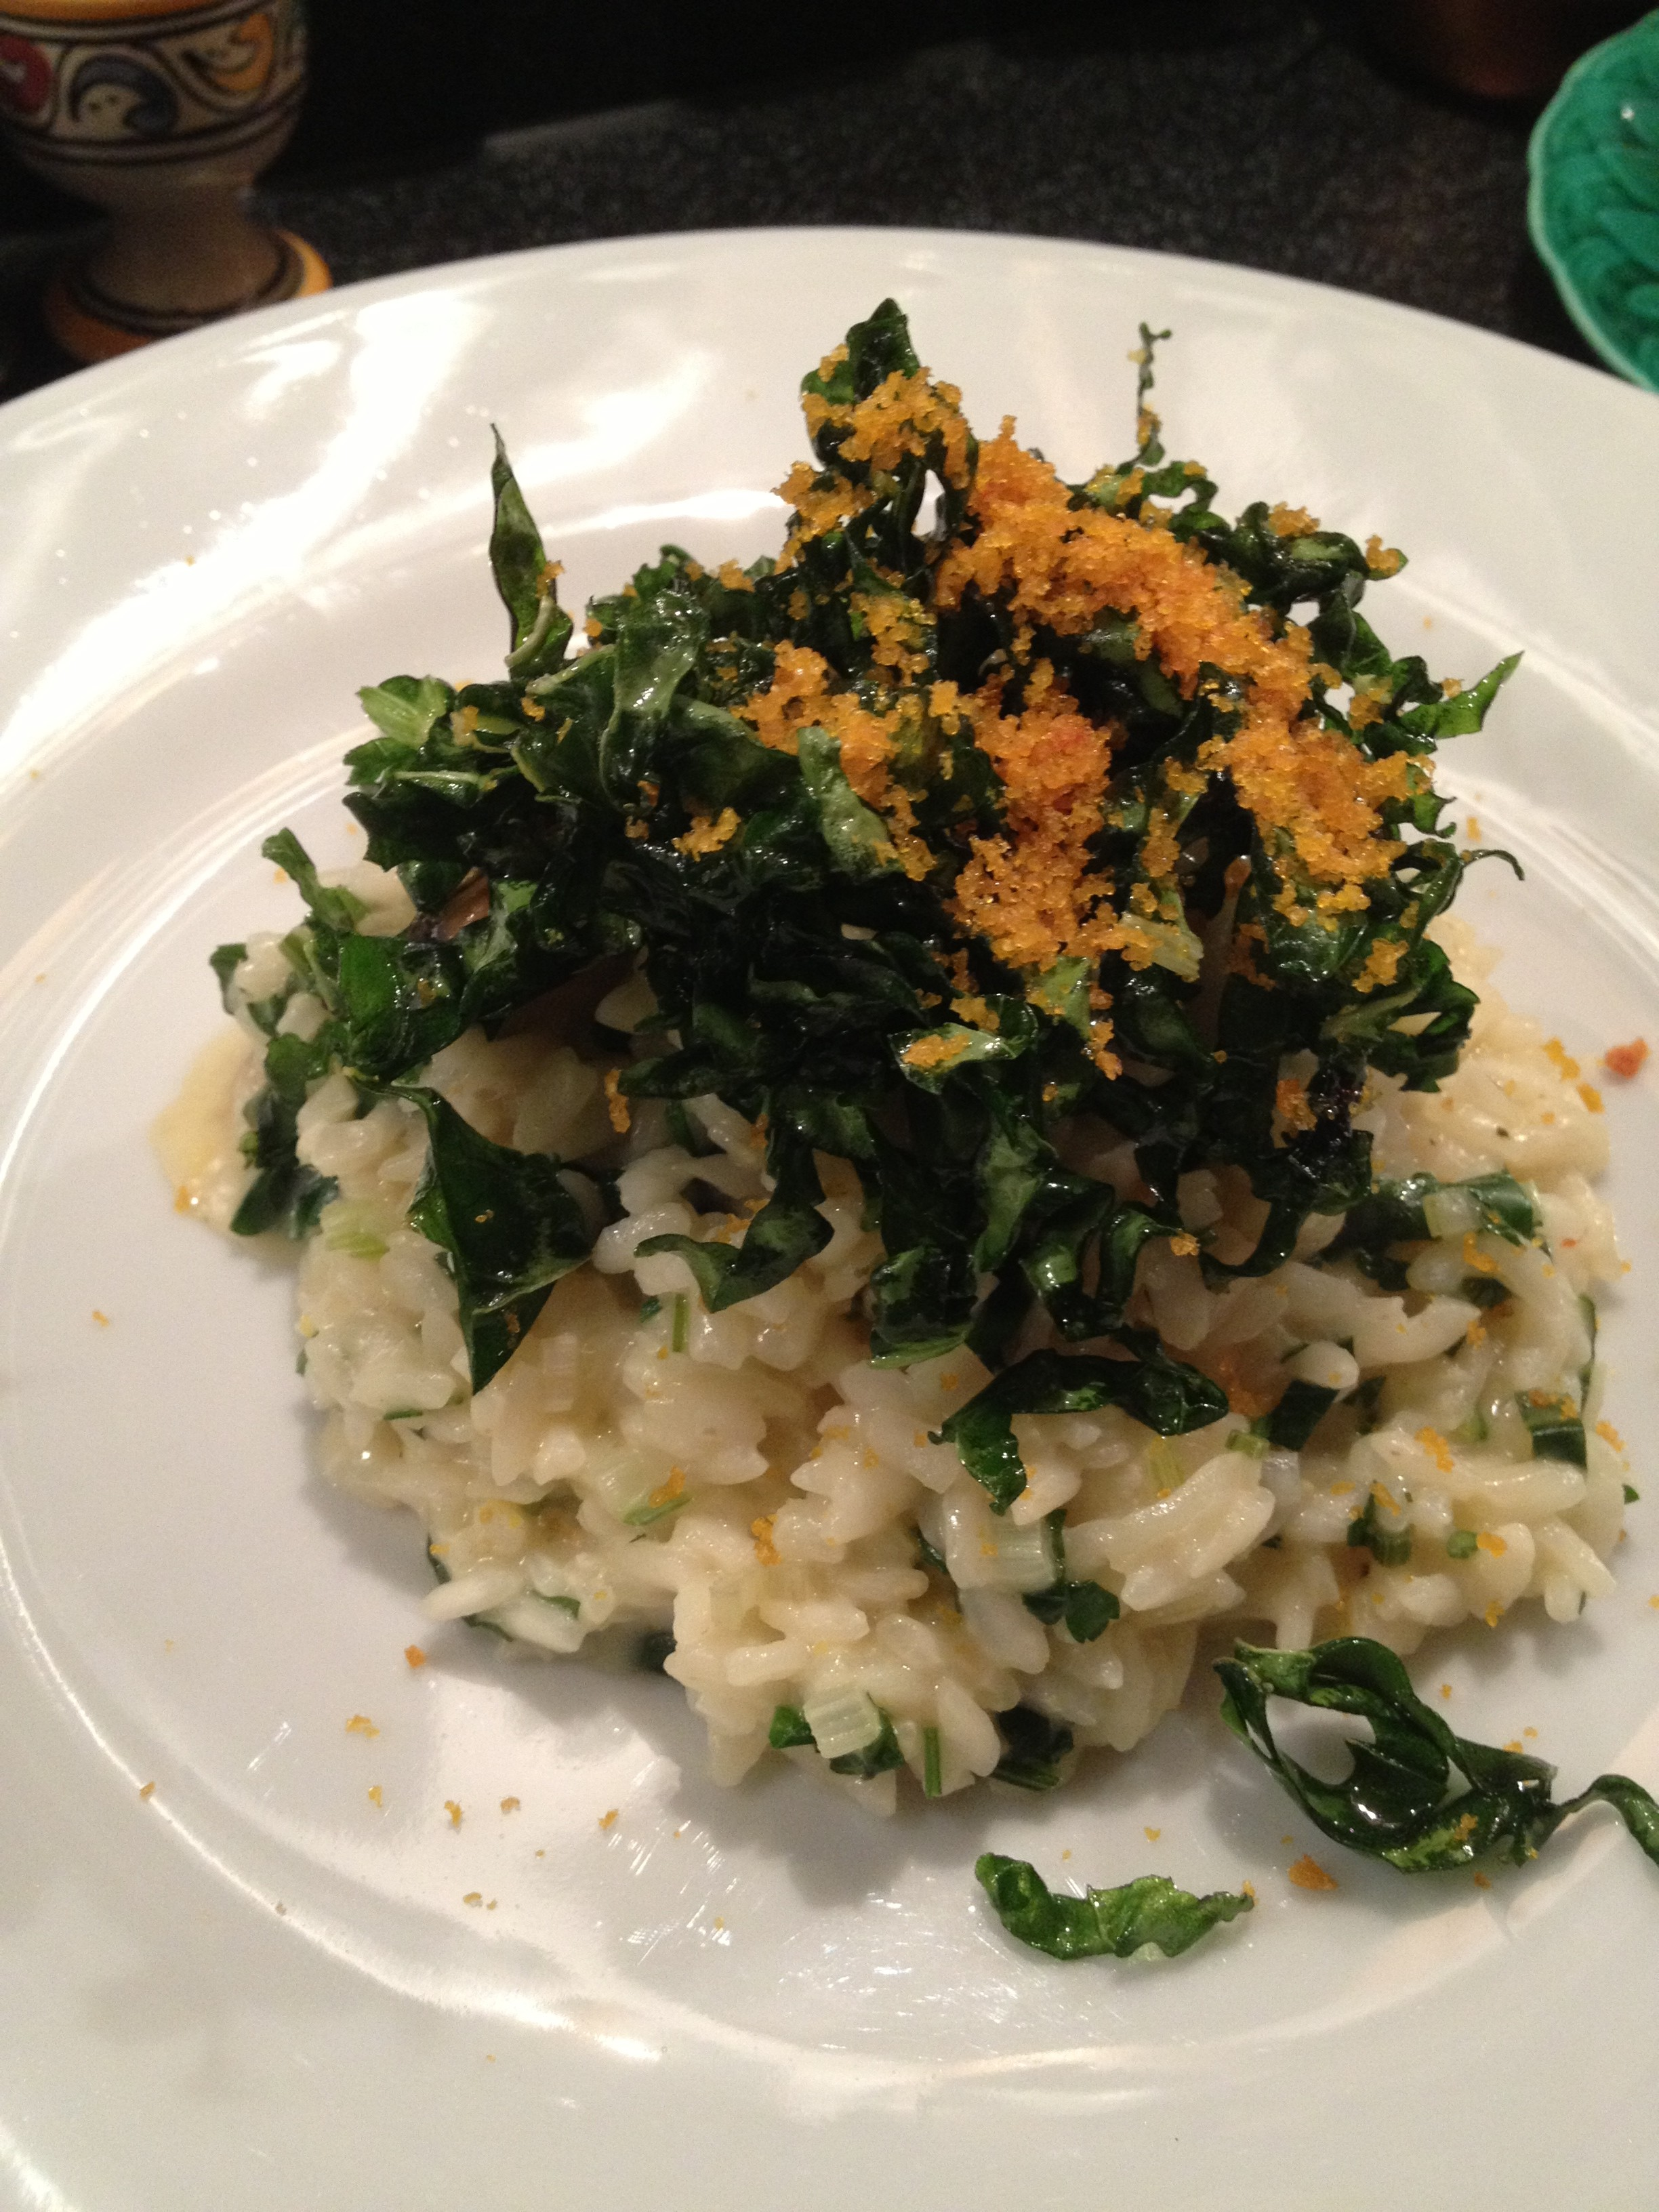 Risotto with bottarga, lemon, mussels and chard